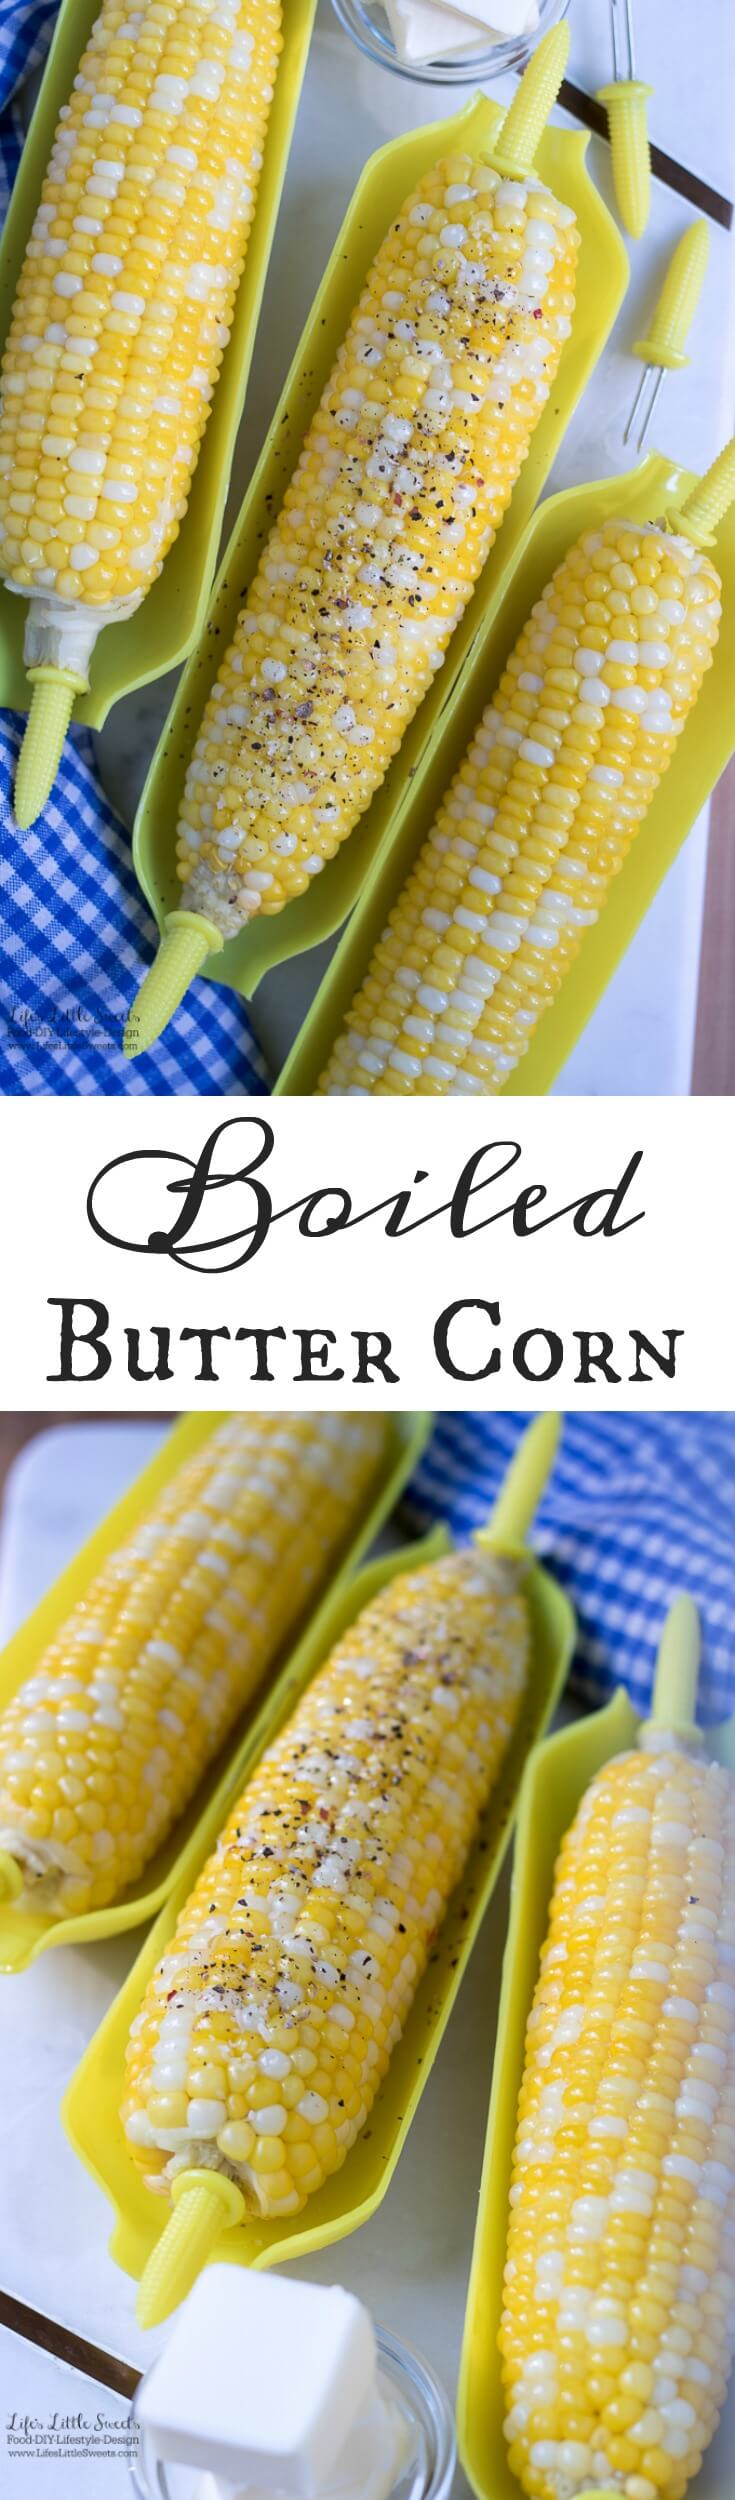 Boiled Butter Corn is sweet, savory and a true sign of Summer! Enjoy this classic way to enjoy corn at any Summer gathering. Cooks in 5 minutes!